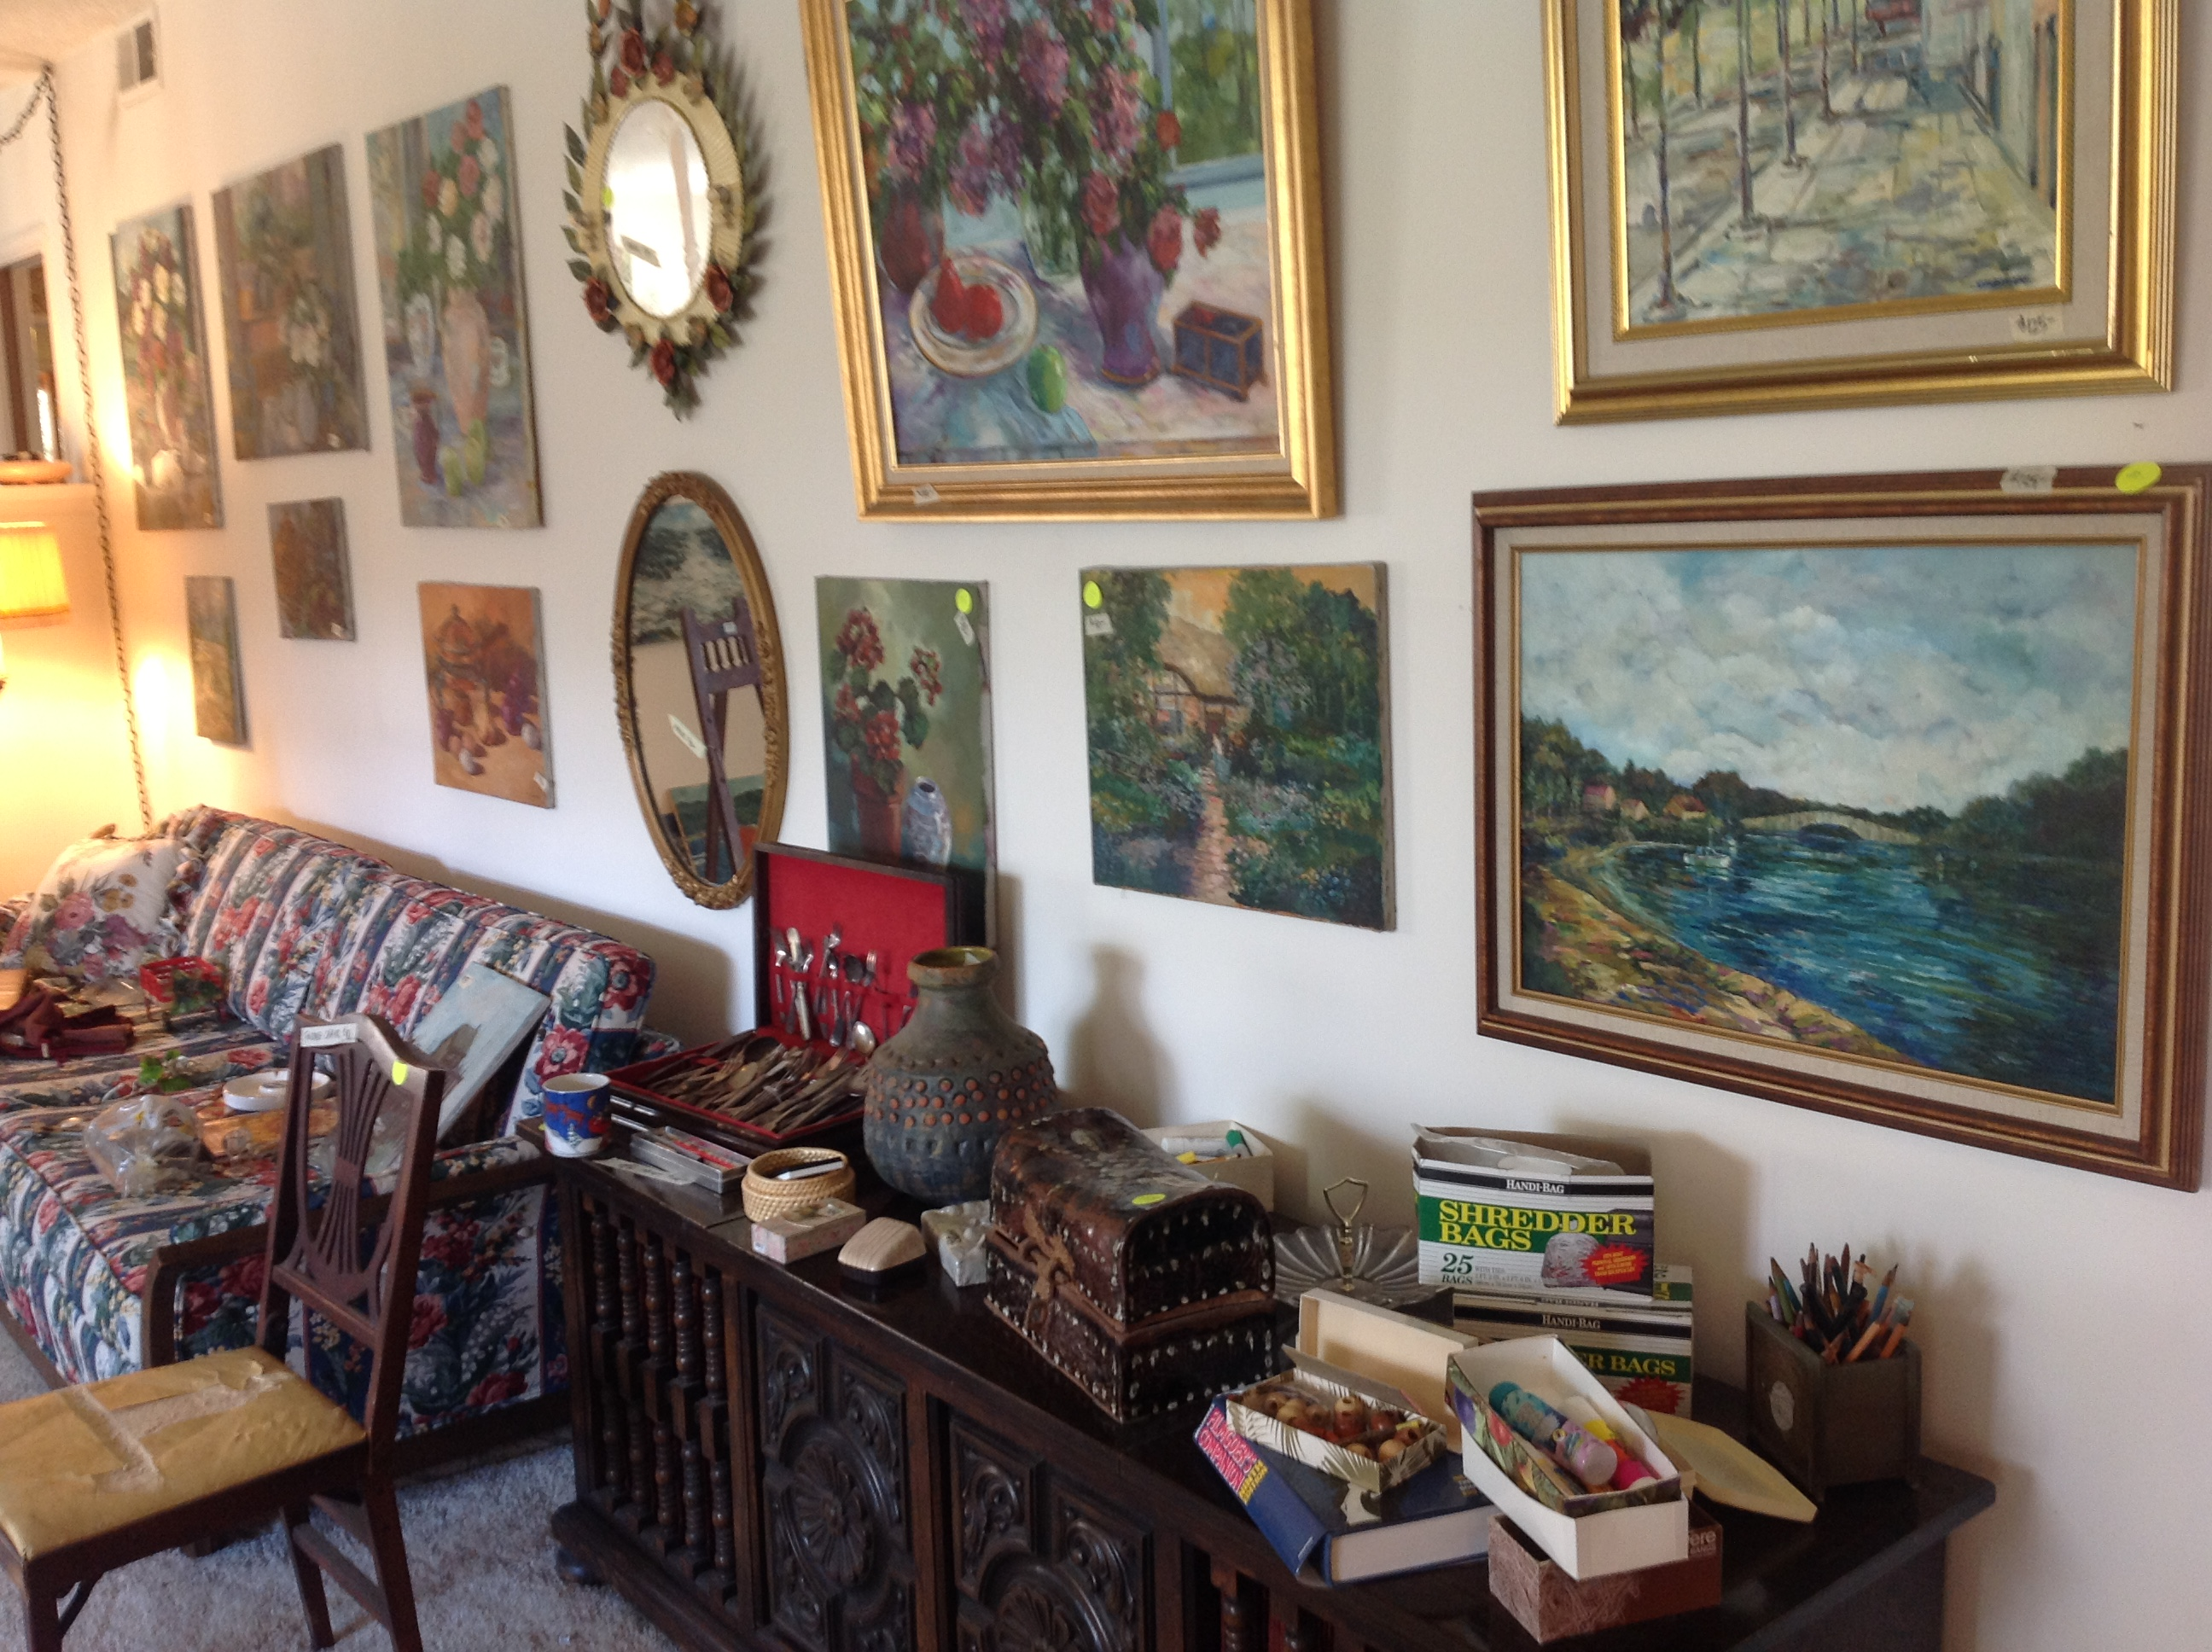 How Do You Plan For and Run Your Own ESTATE SALE? Some Practical Tips.